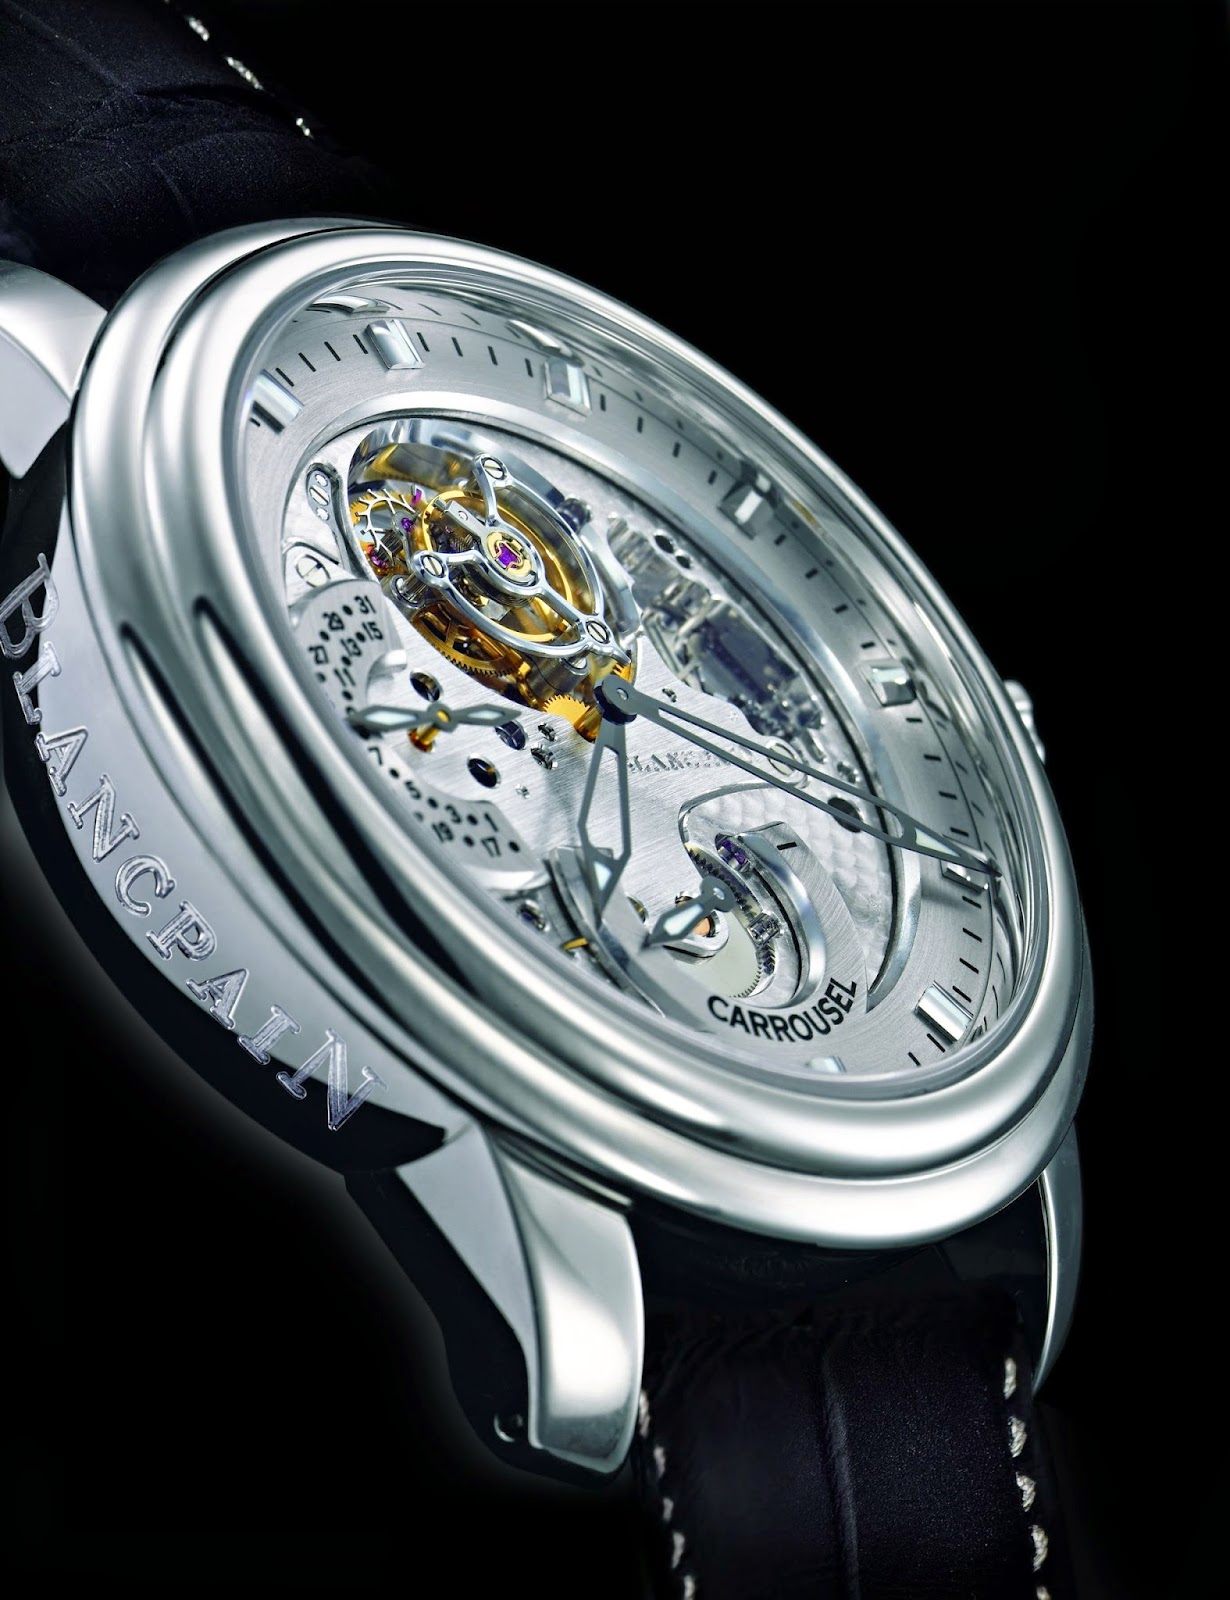 Blancpain Carrousel Volant Une Minute replica watch